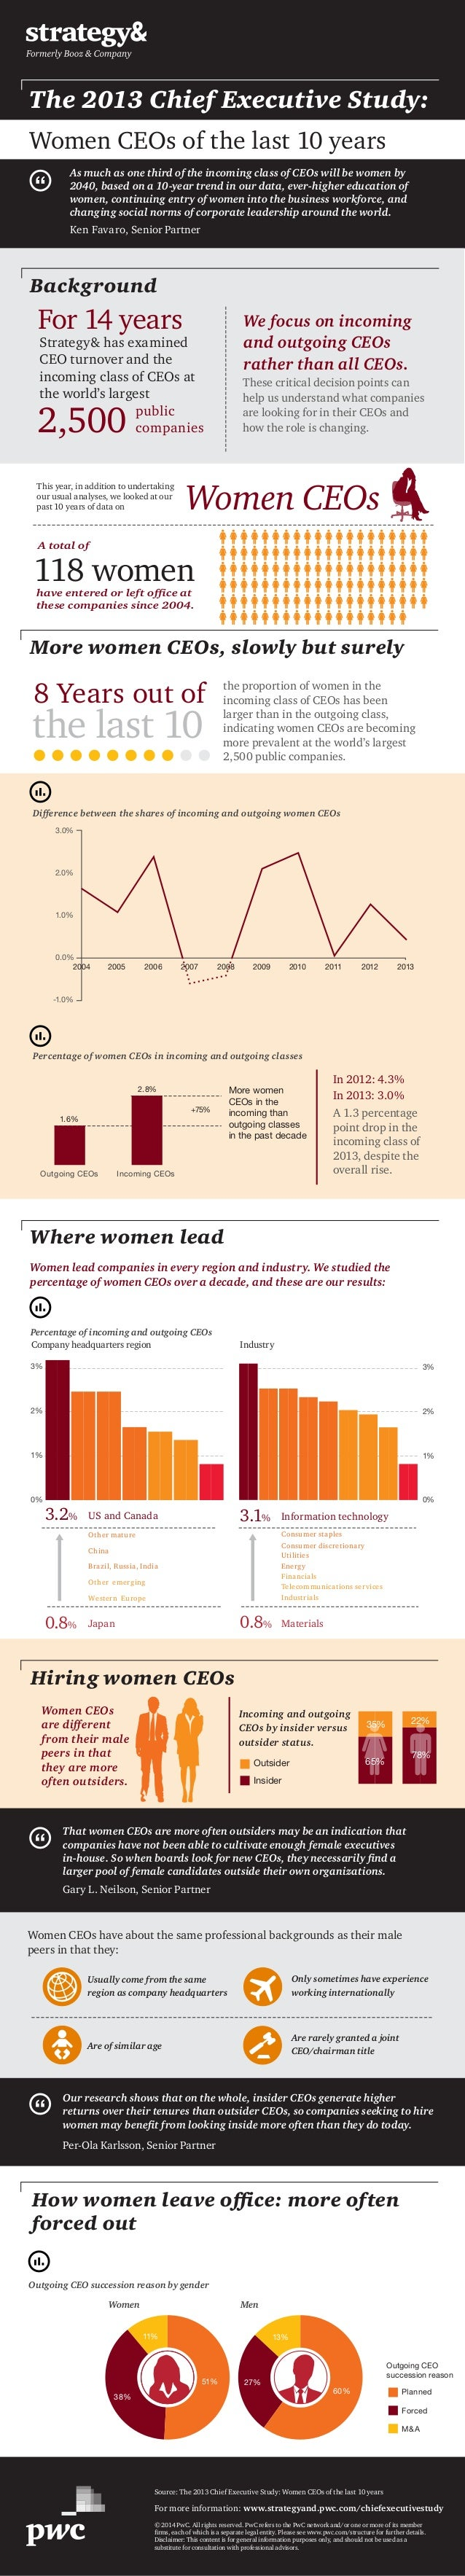 Women CEOs have about the same professional backgrounds as their male peers in that they: Are rarely granted a joint CEO/c...